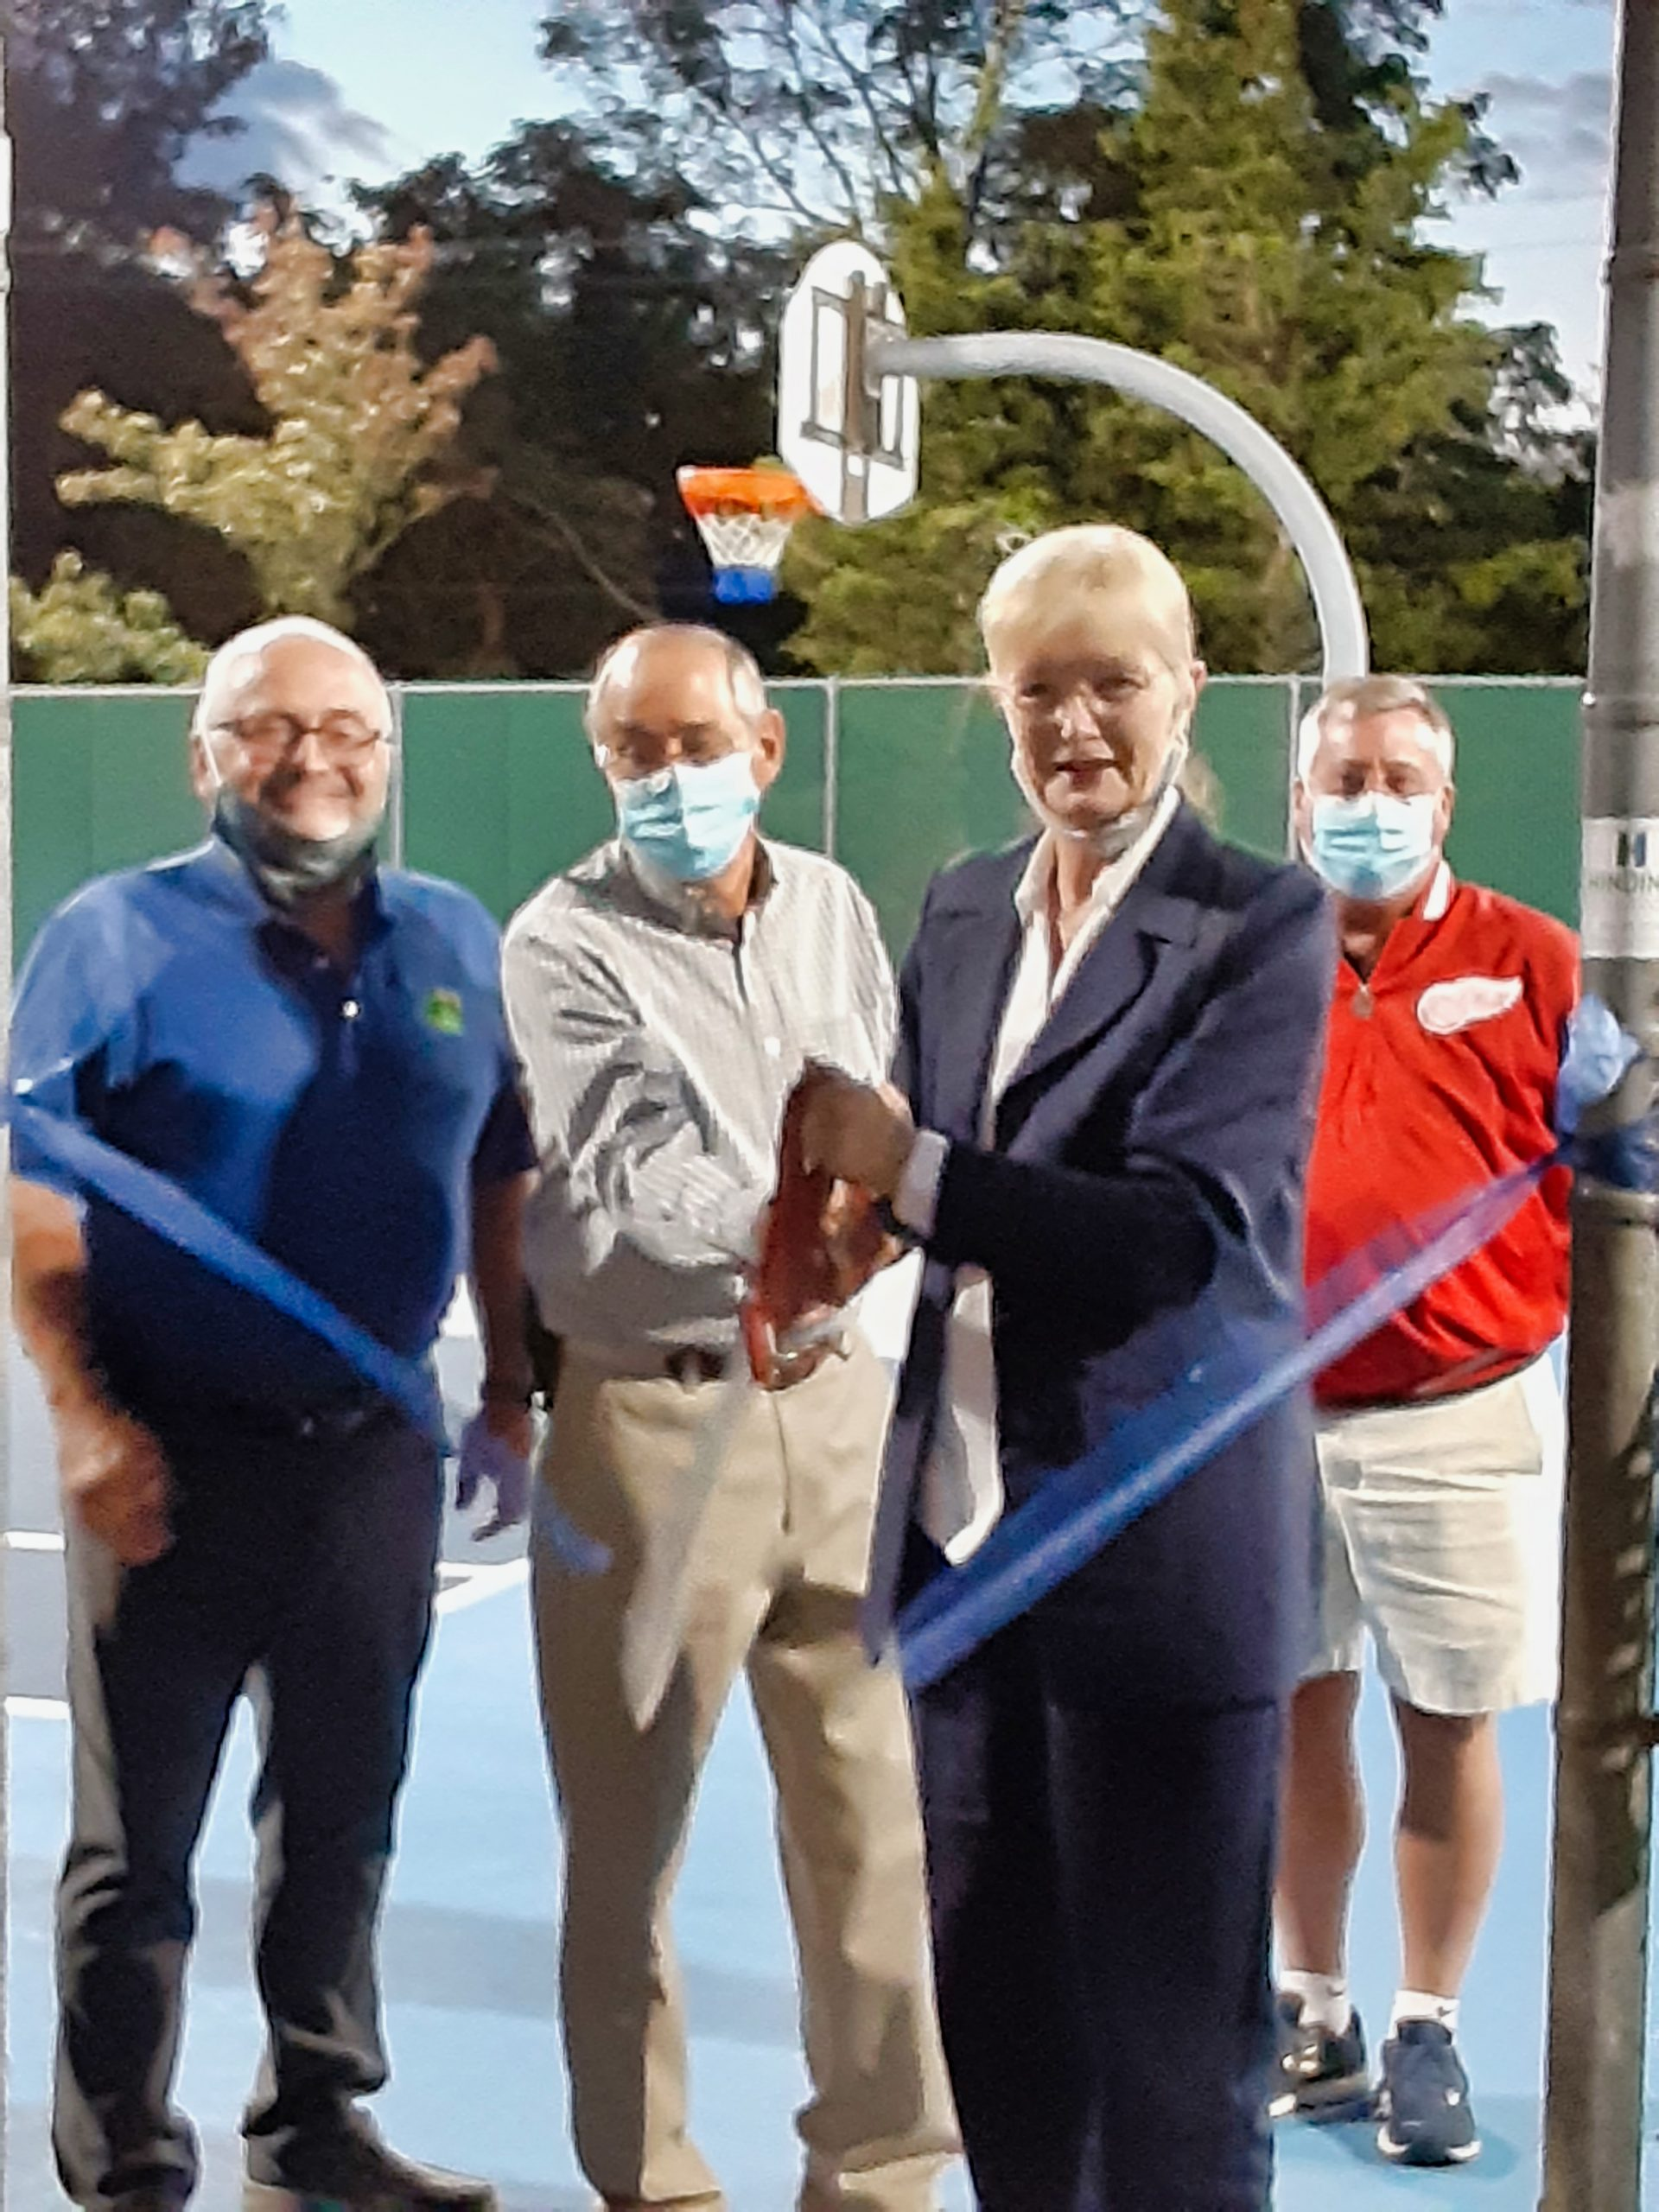 Refurbished courts reopen in Veterans Park